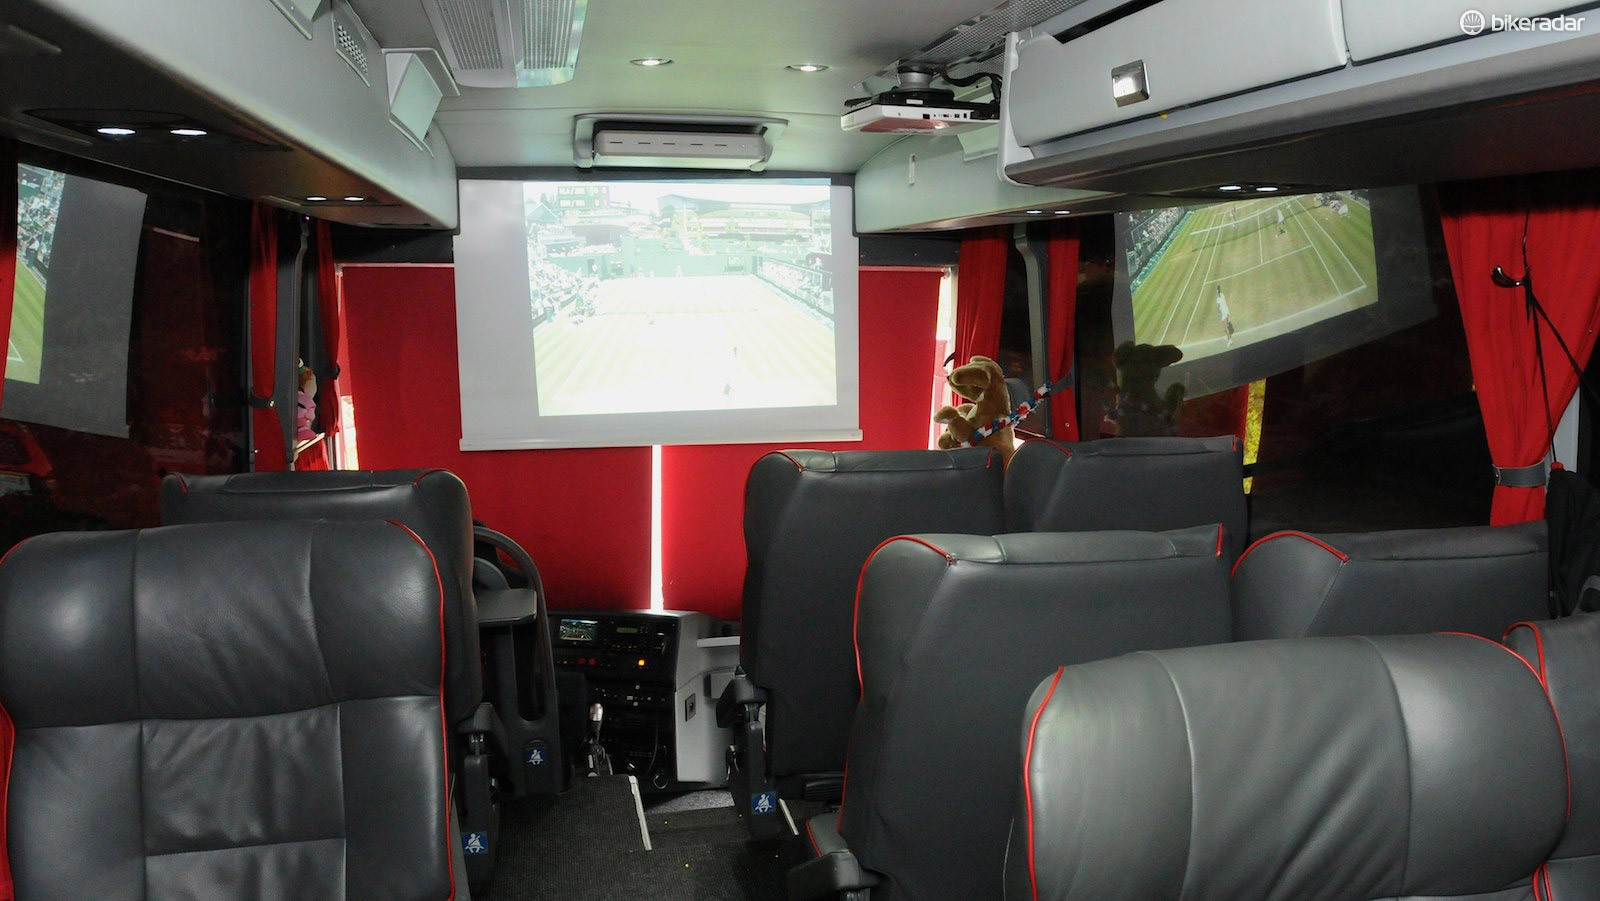 When stationary, a projector and screen can be used to show almost any TV shows or films - or the tennis from Wimbledon